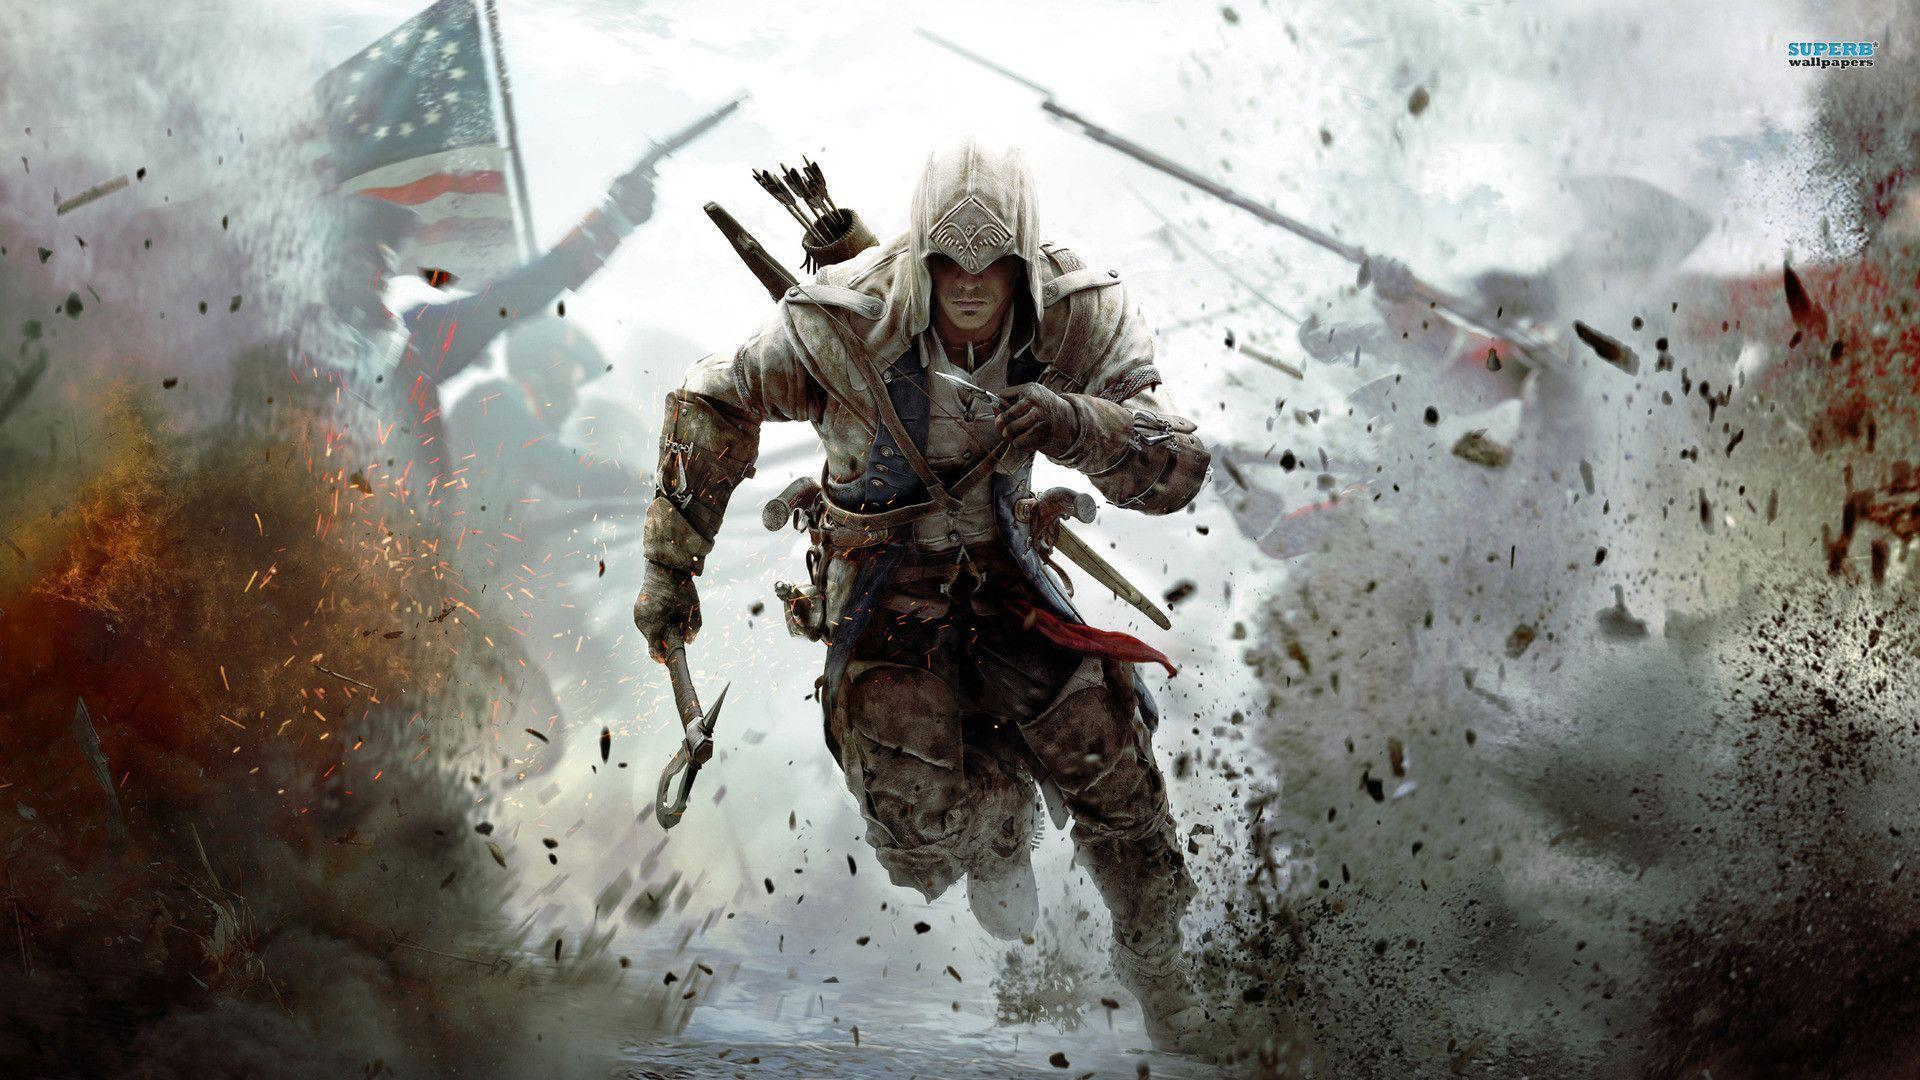 assassin creed warpaper Assassin's Creed III wallpaper - Game wallpapers - #